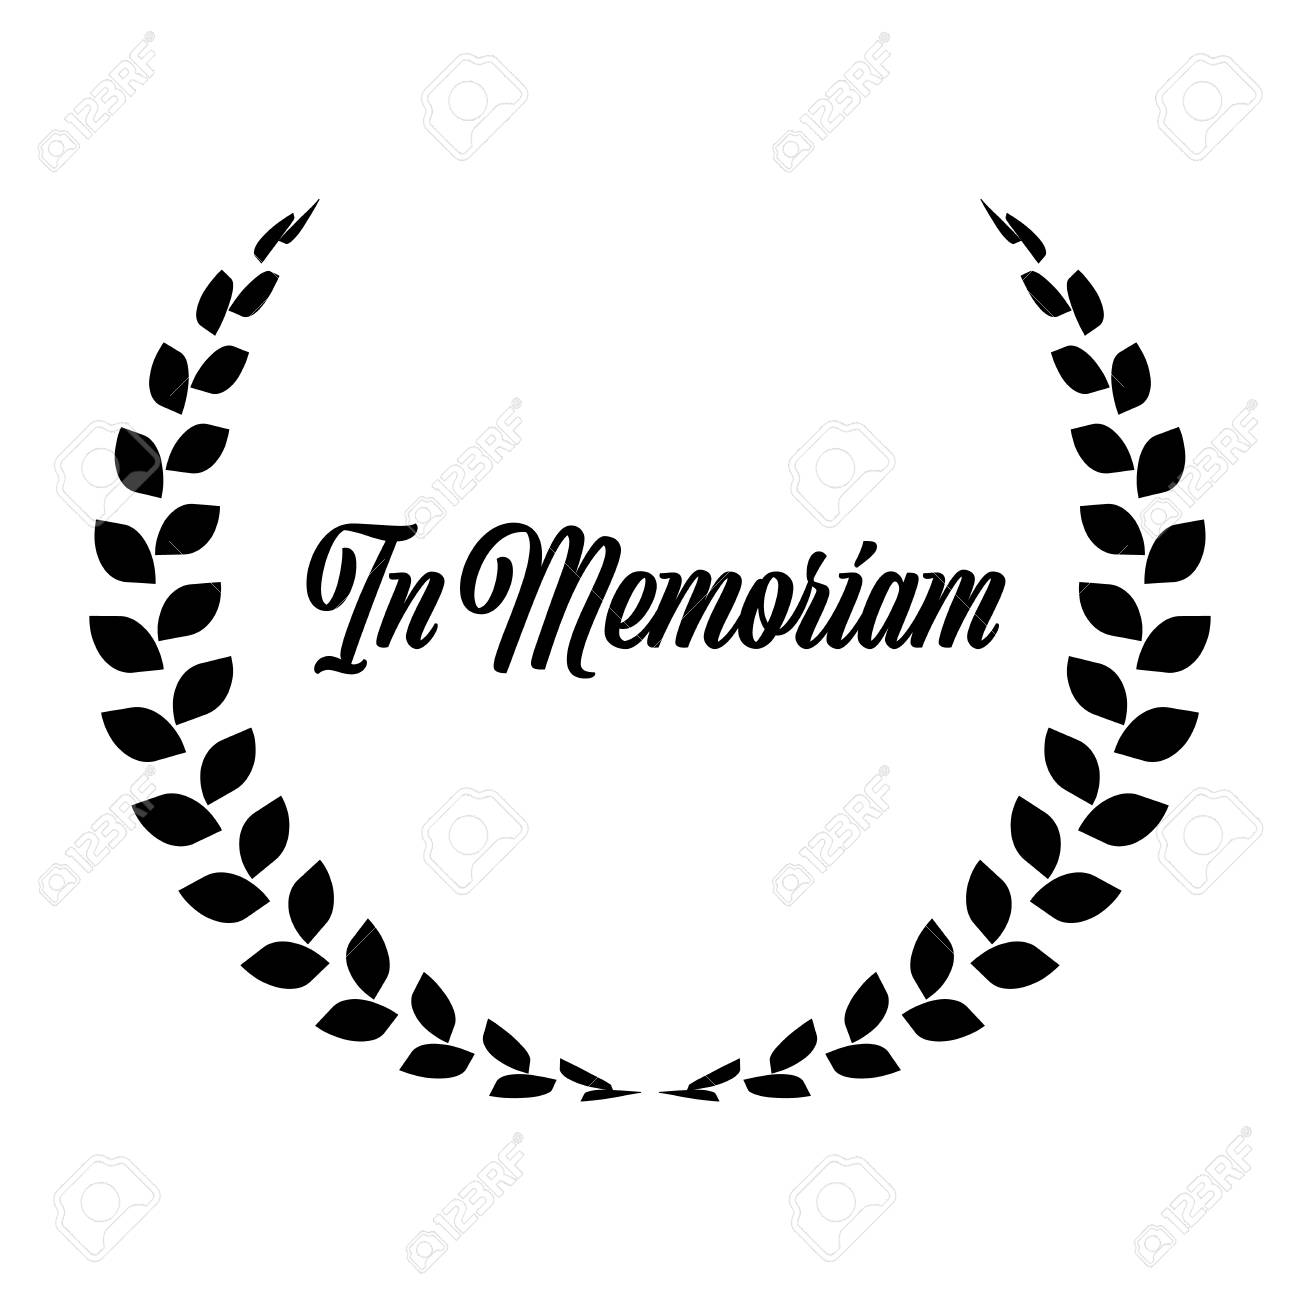 Funeral wreath with In Memoriam label. Rest in peace. Simple flat black illustration. - 119579287